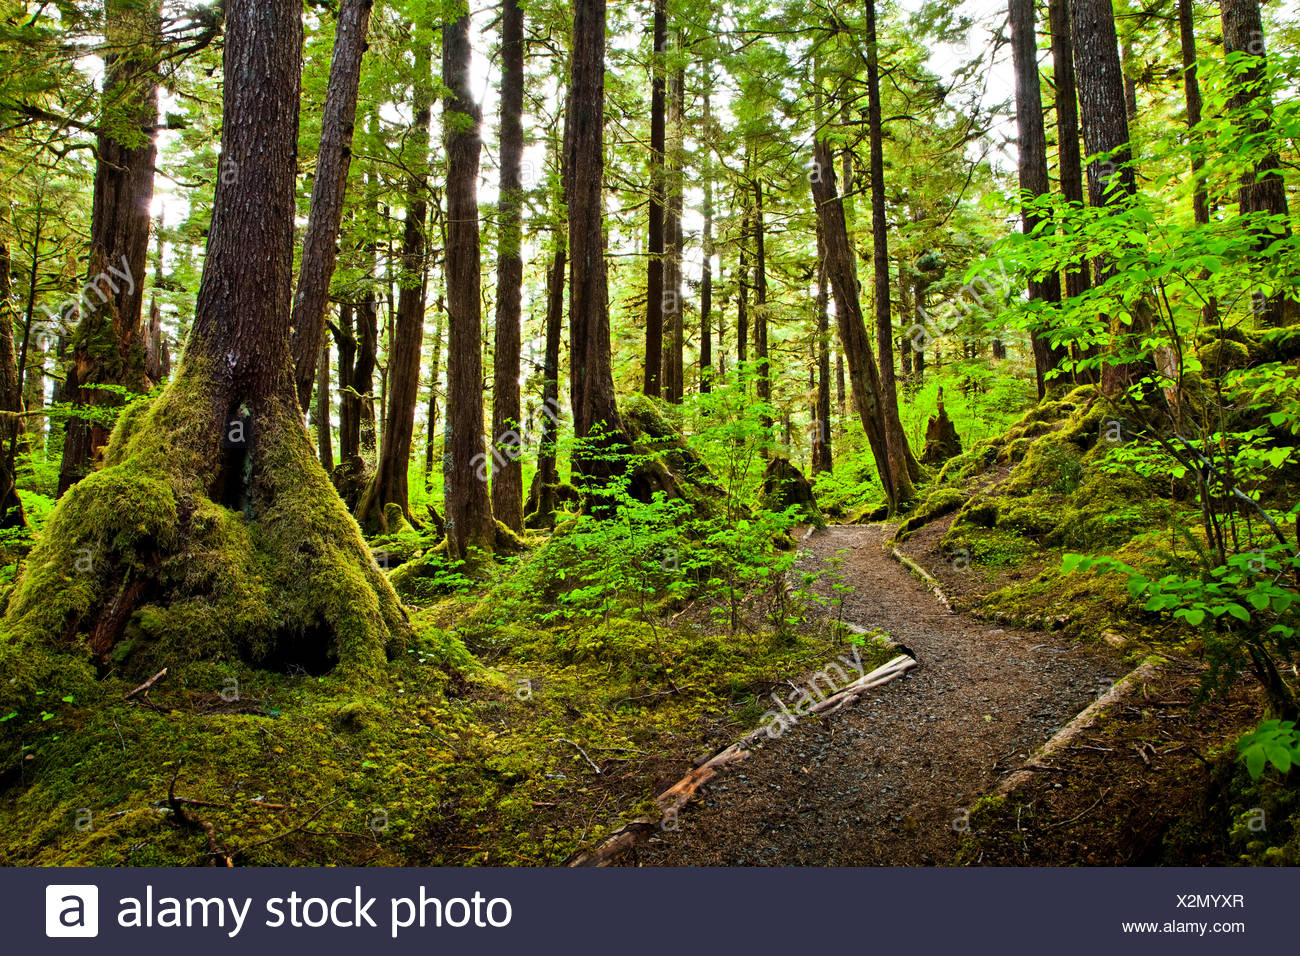 Lunch Falls Loop Trail winds through a temperate rainforest, Settler's Cove State Recreation Site, Ketchikan, Southeast Alaska - Stock Image